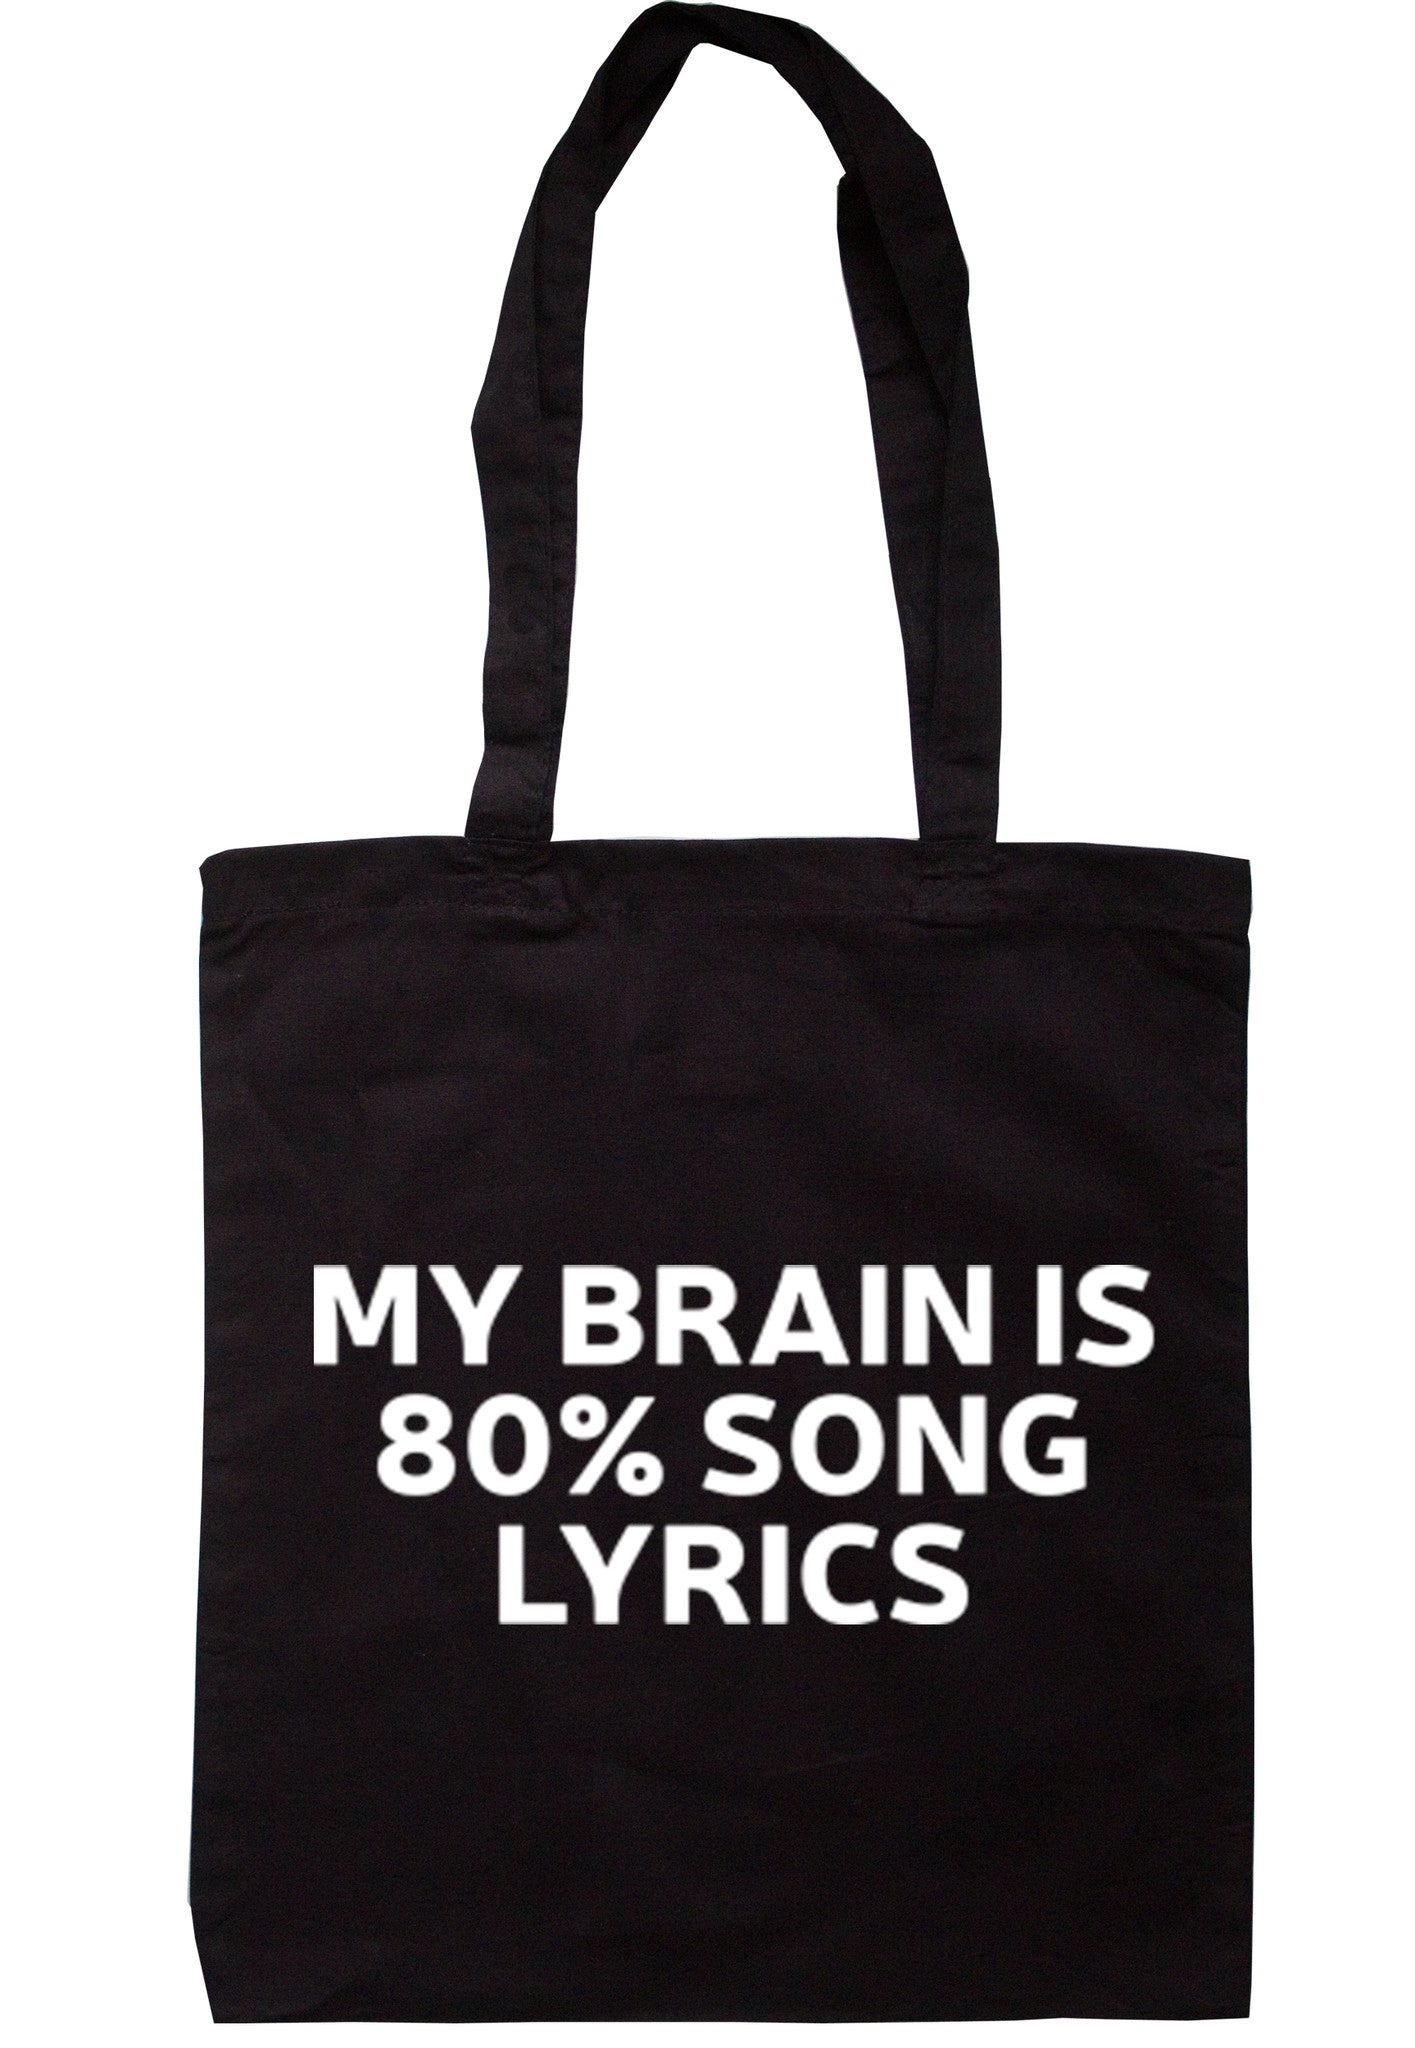 My Brain Is 80% Song Lyrics Tote Bag TB0075 - Illustrated Identity Ltd.